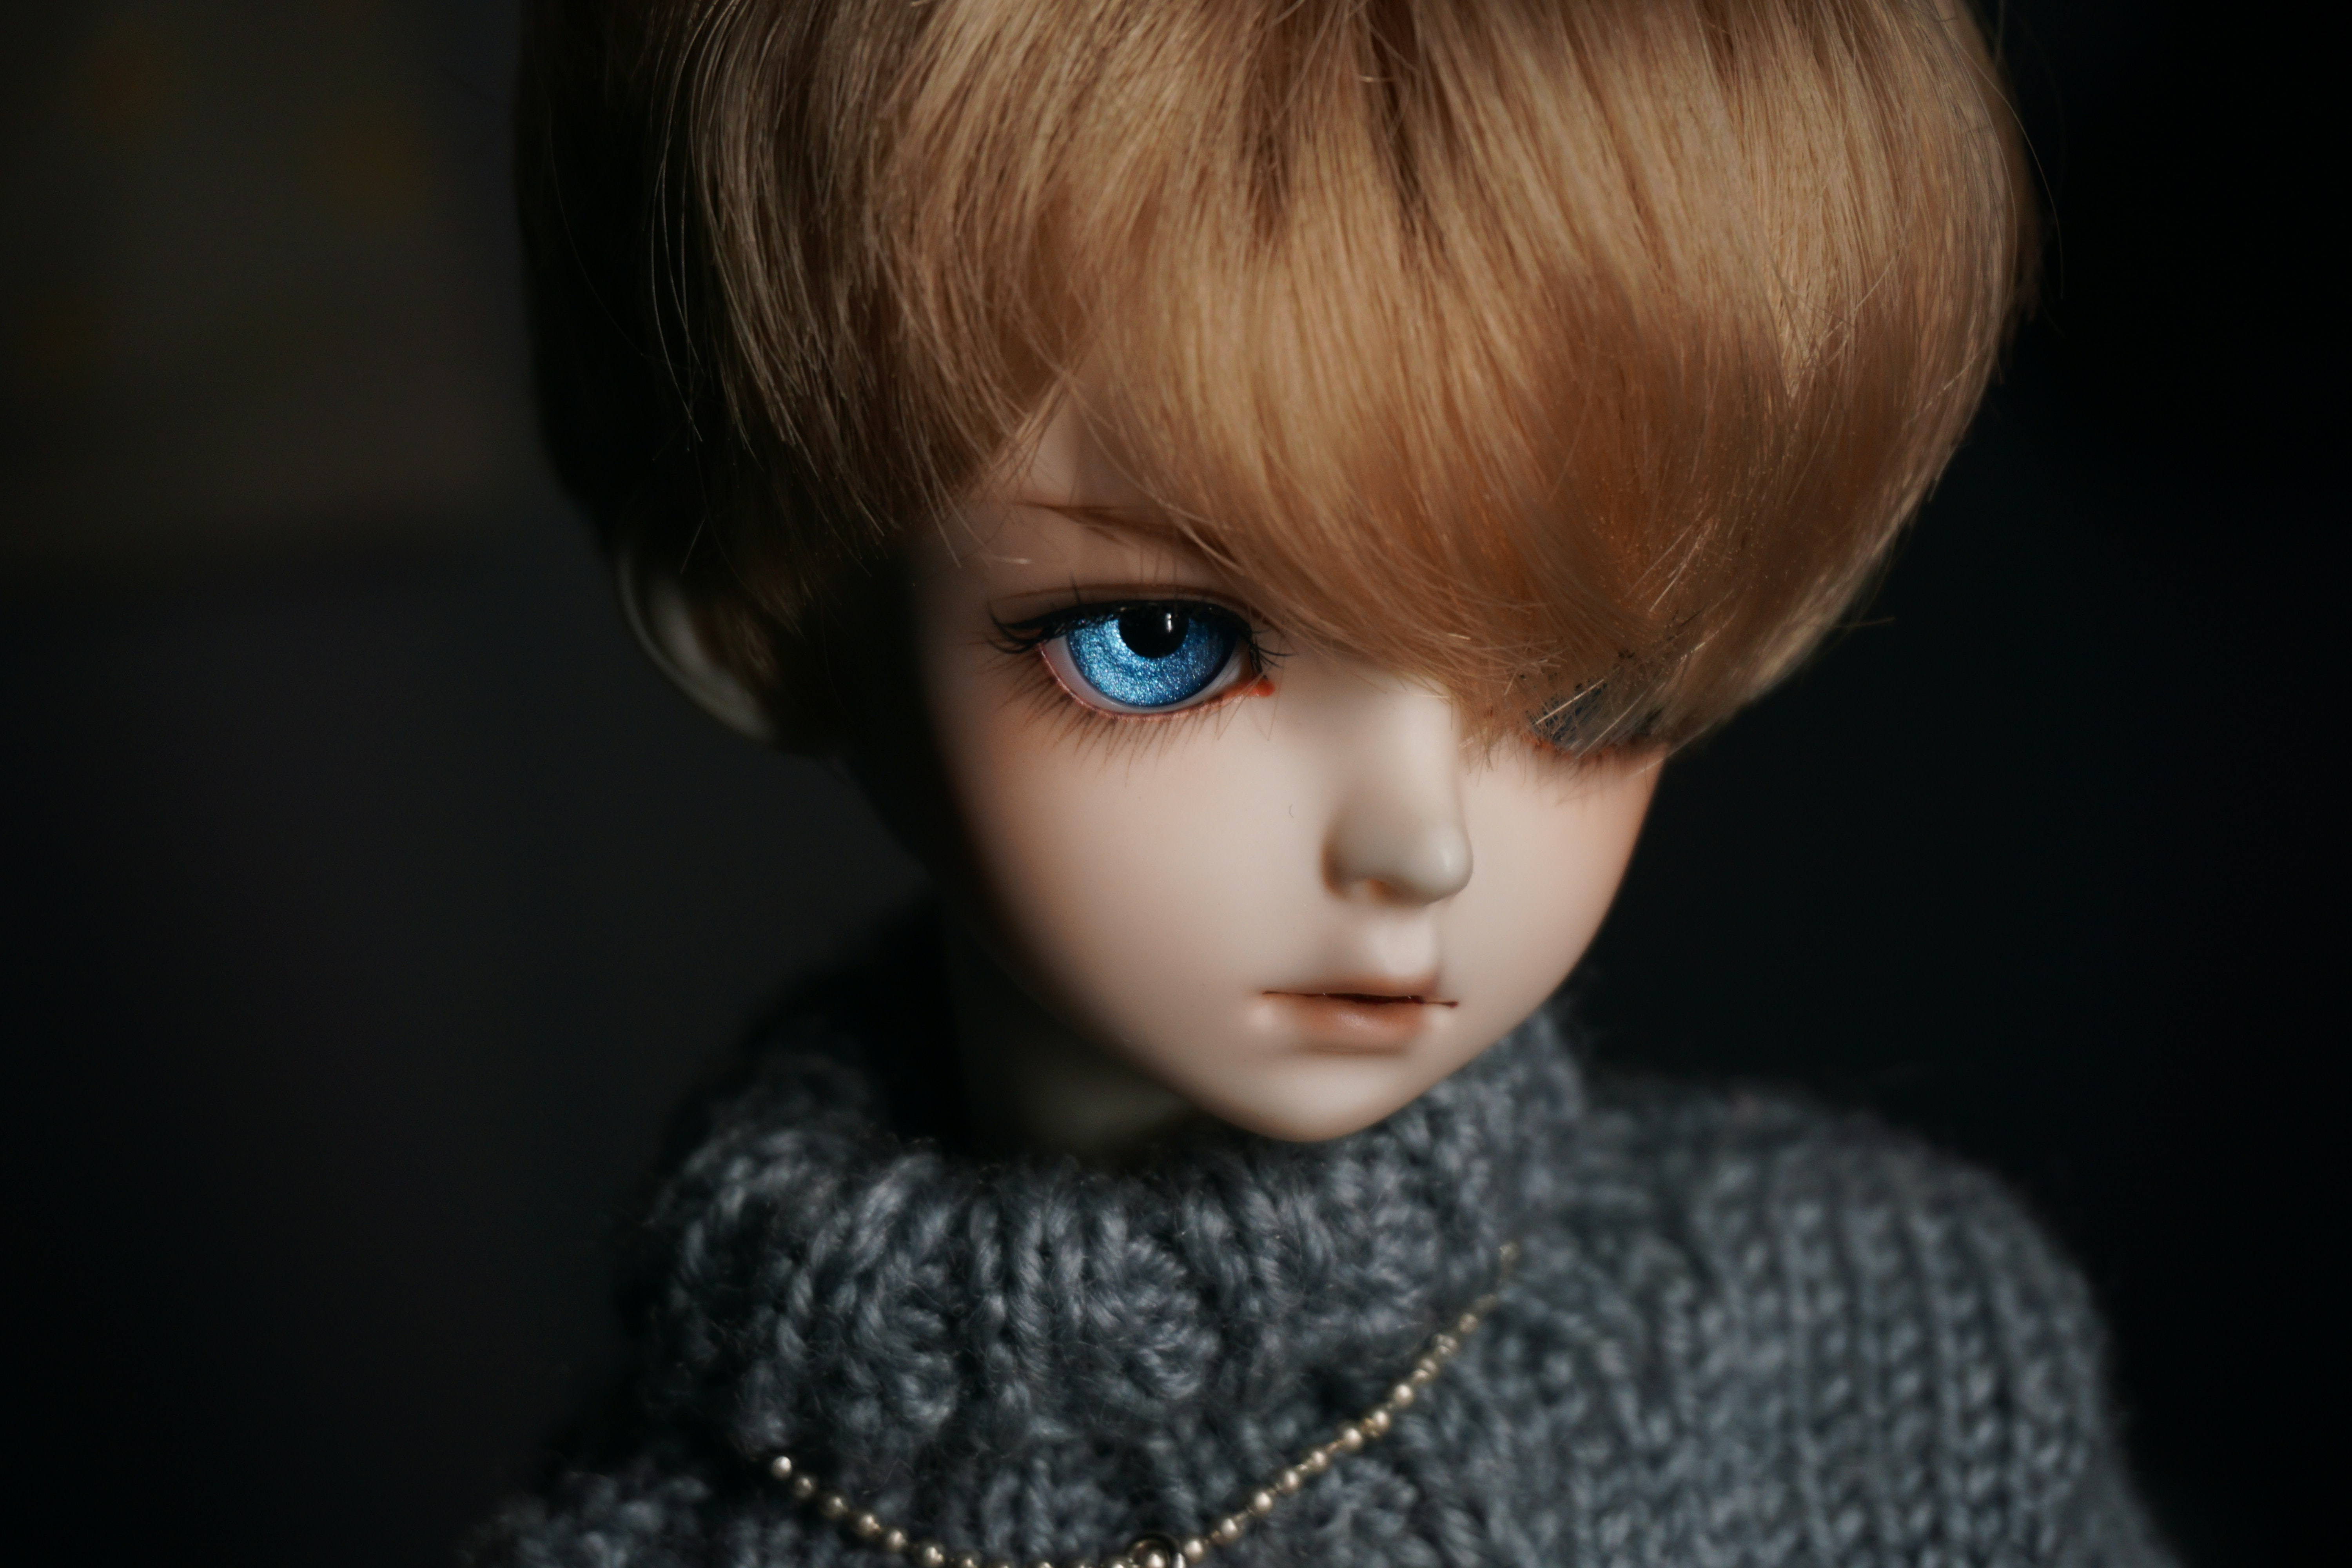 Creepy realistic doll with blue eyes and swoopy hair